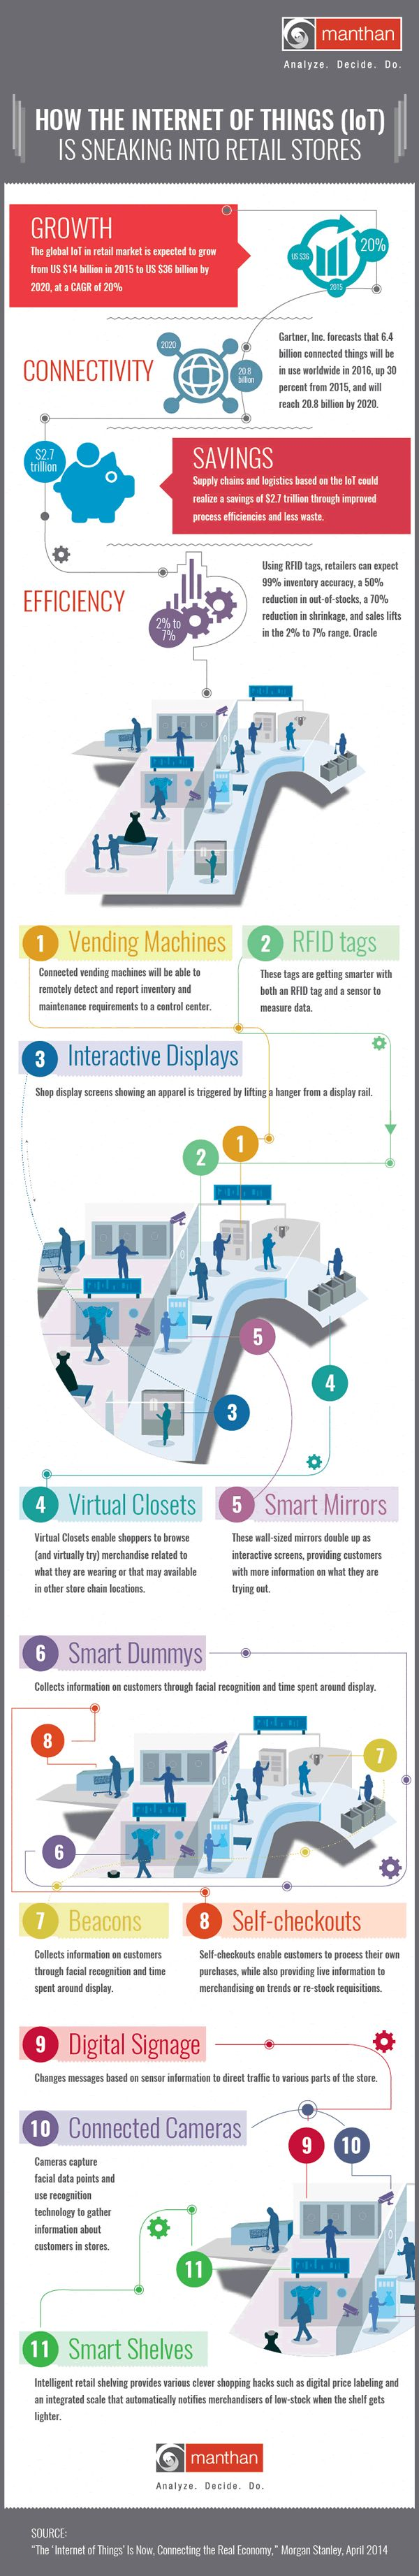 Internet of Things in retail stores – use cases data and benefits infographic – source and bigger image: Manthan